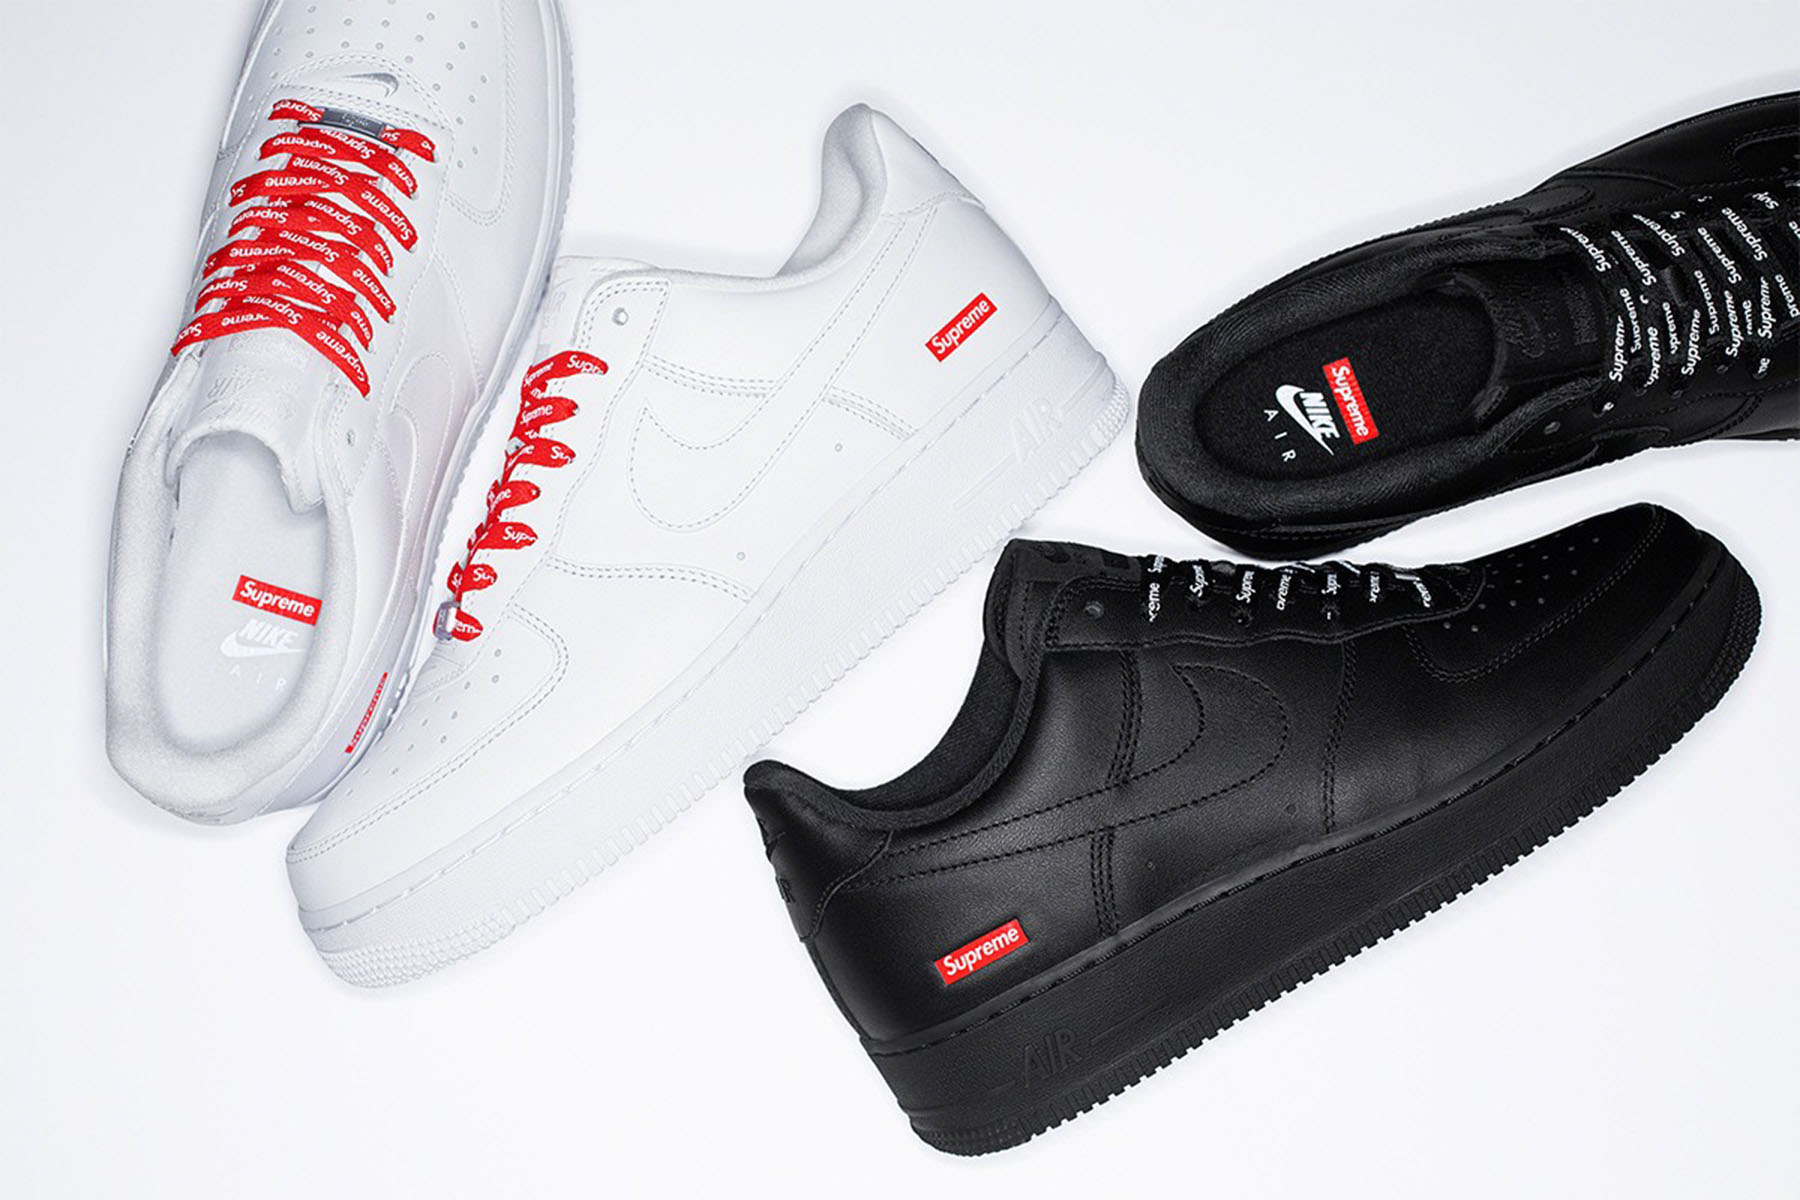 6 sneaker collabs in 2020 that every